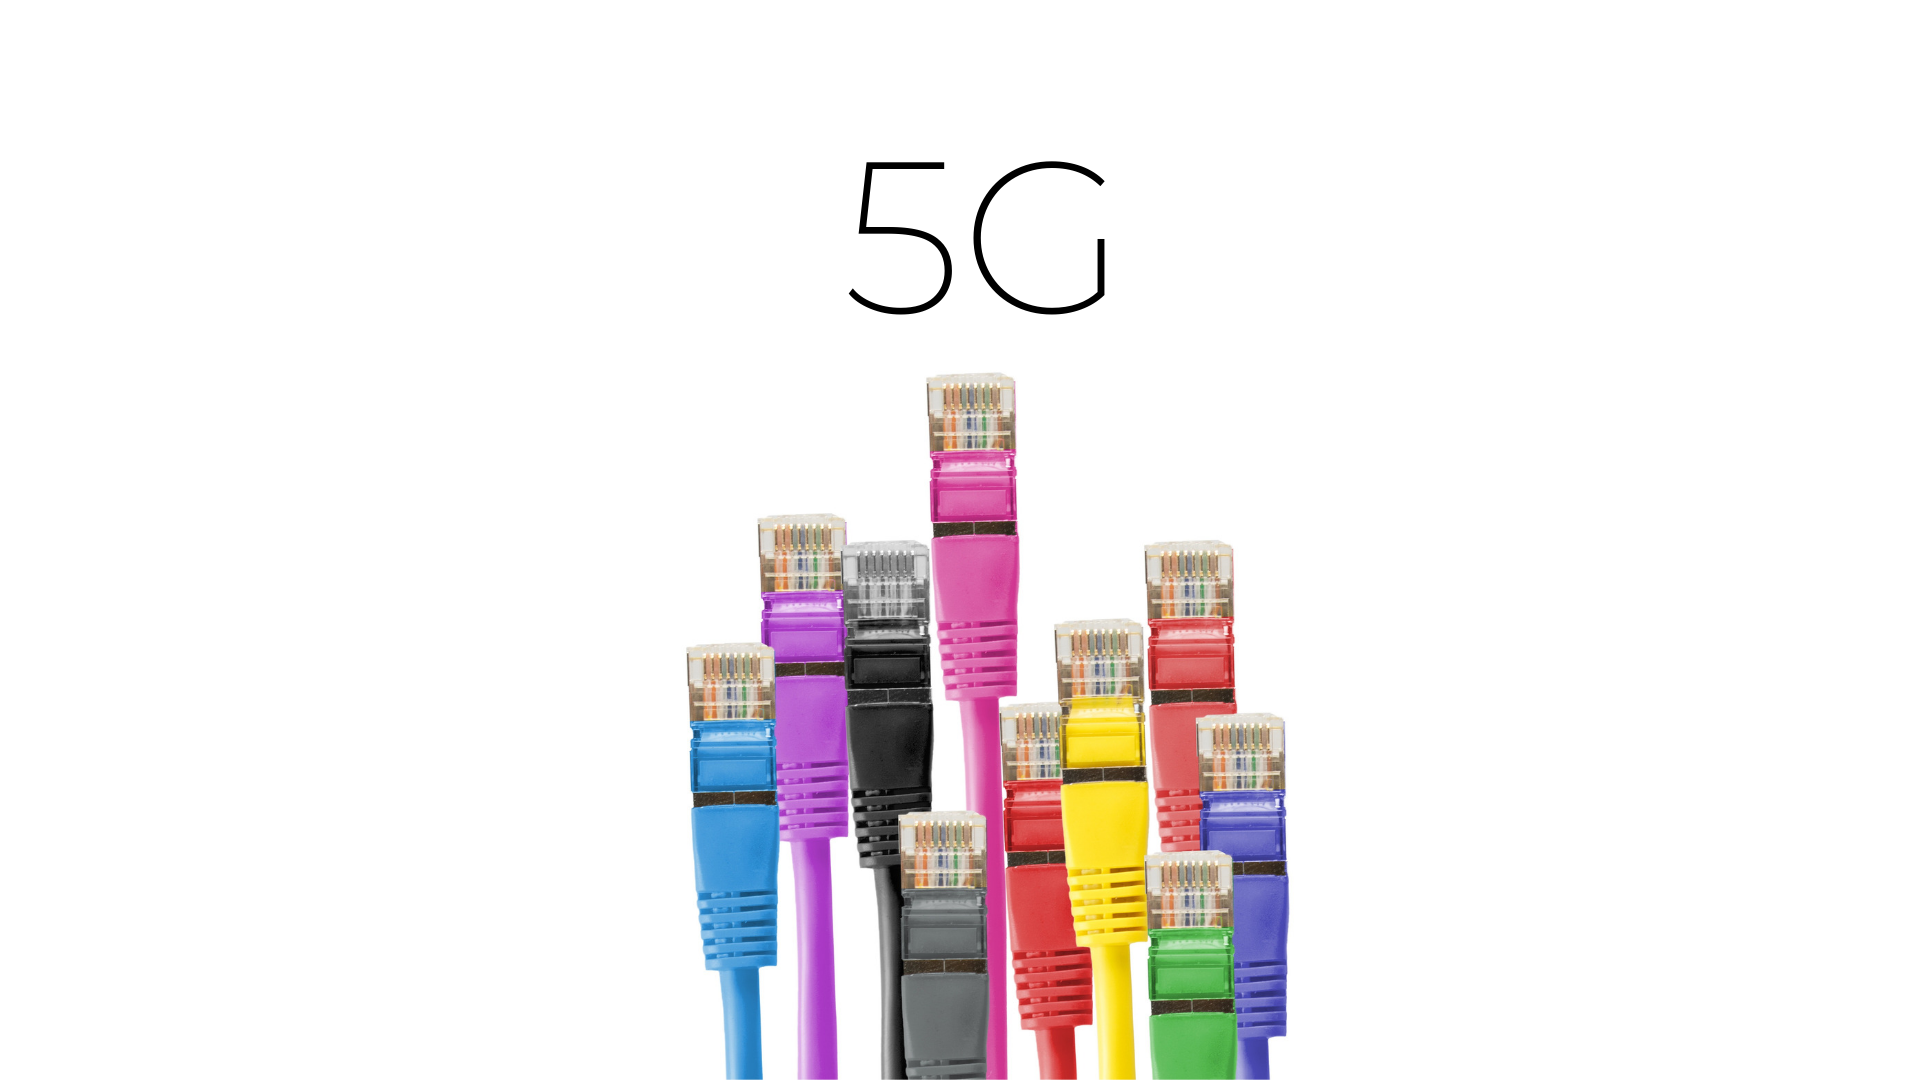 future with 5g technology